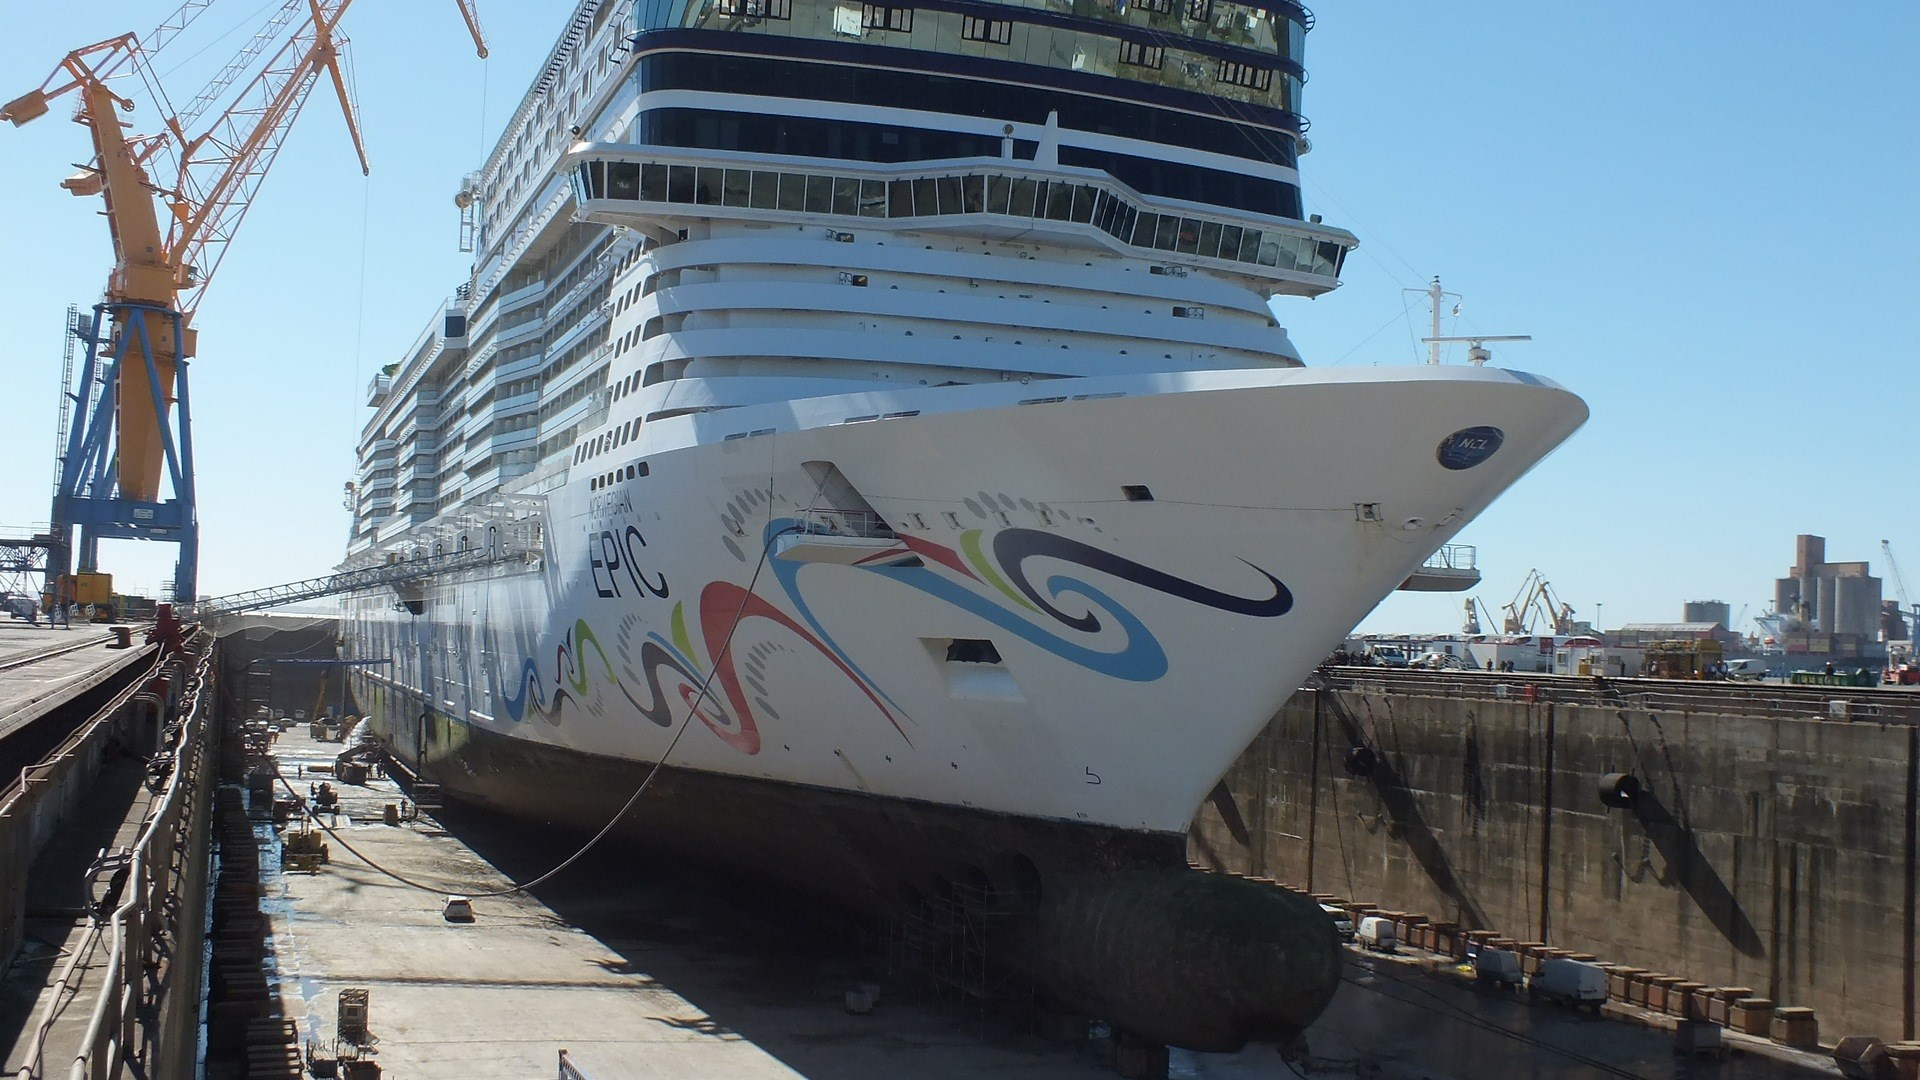 Cruise vessel 'Norwegian Epic'